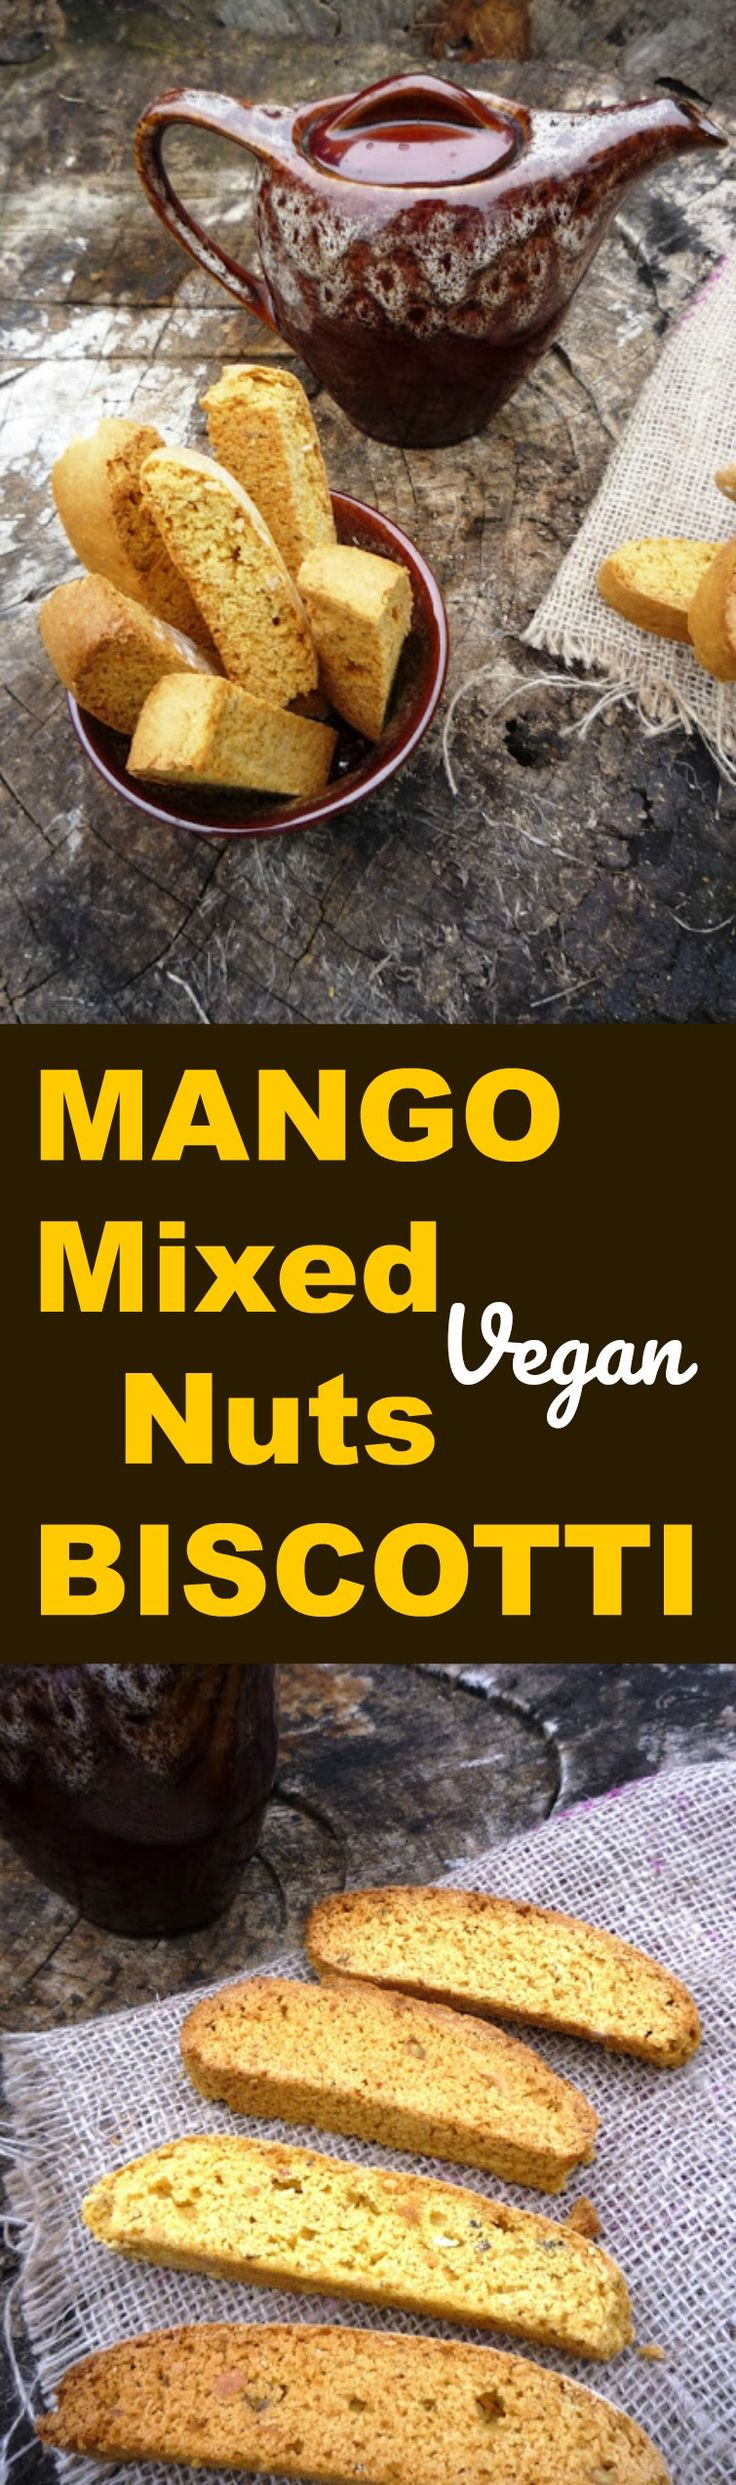 Mango and mixed nuts Biscotti vegan